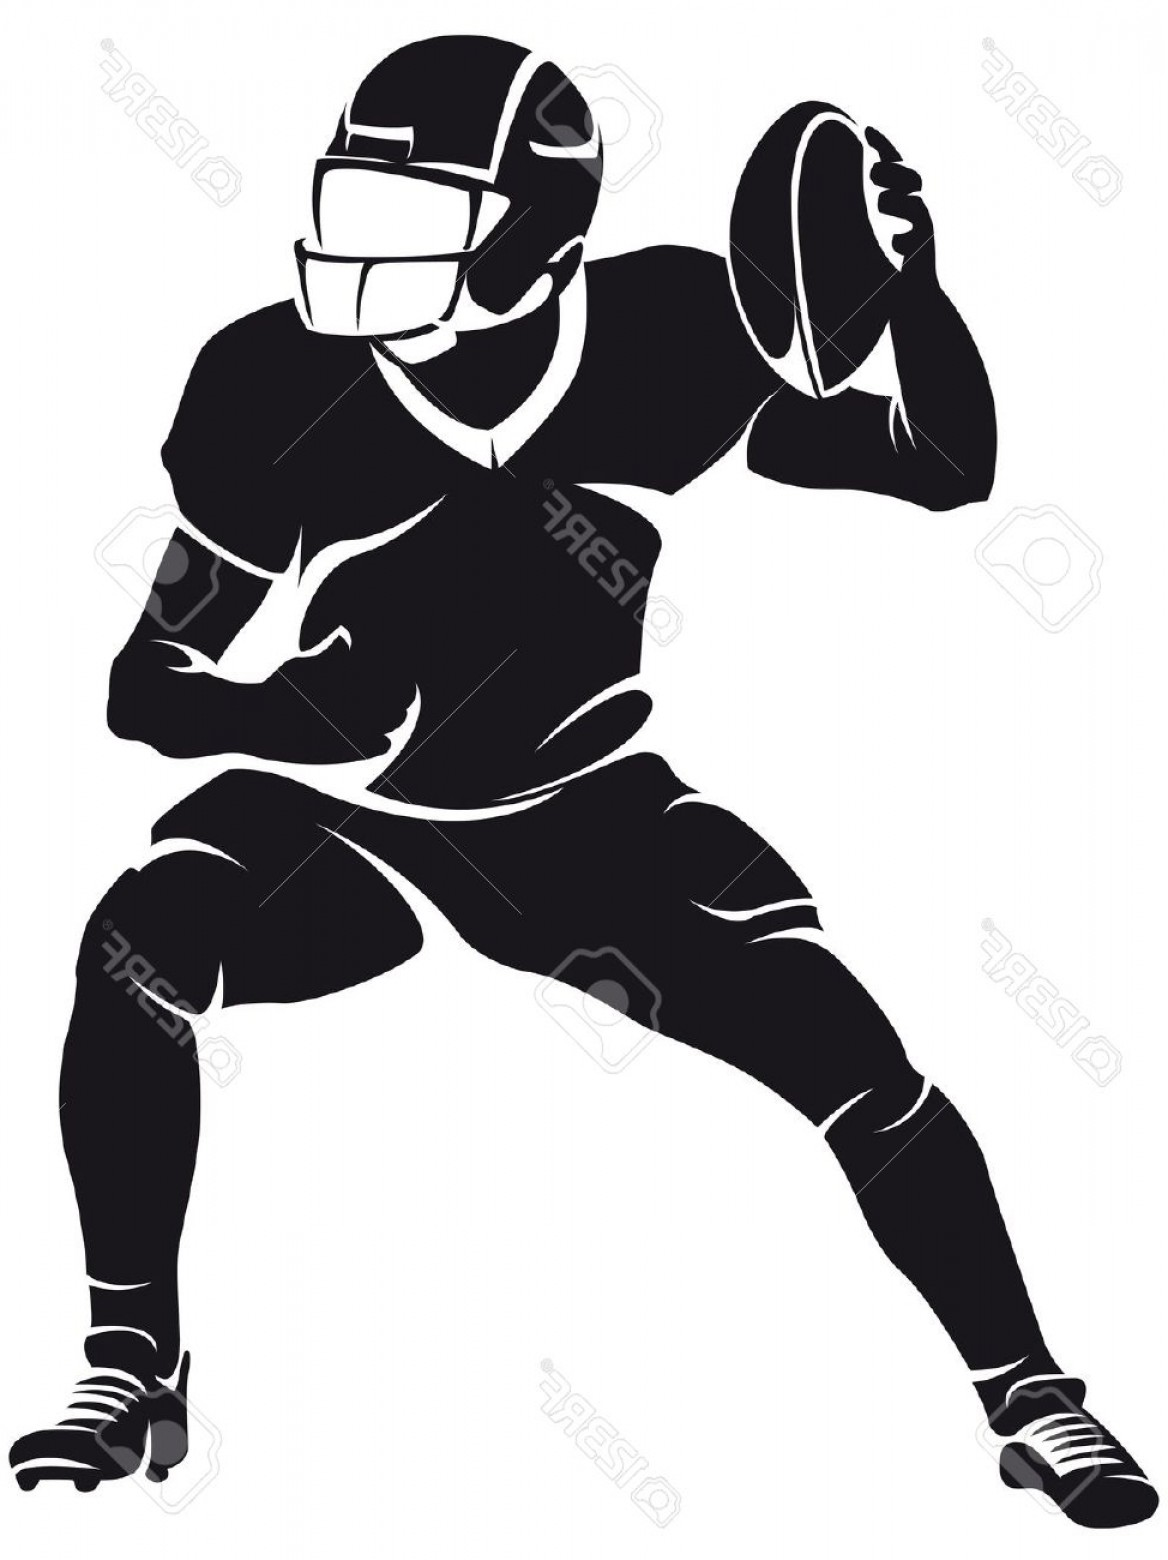 Free Football Team Silhouette Clipart Image.